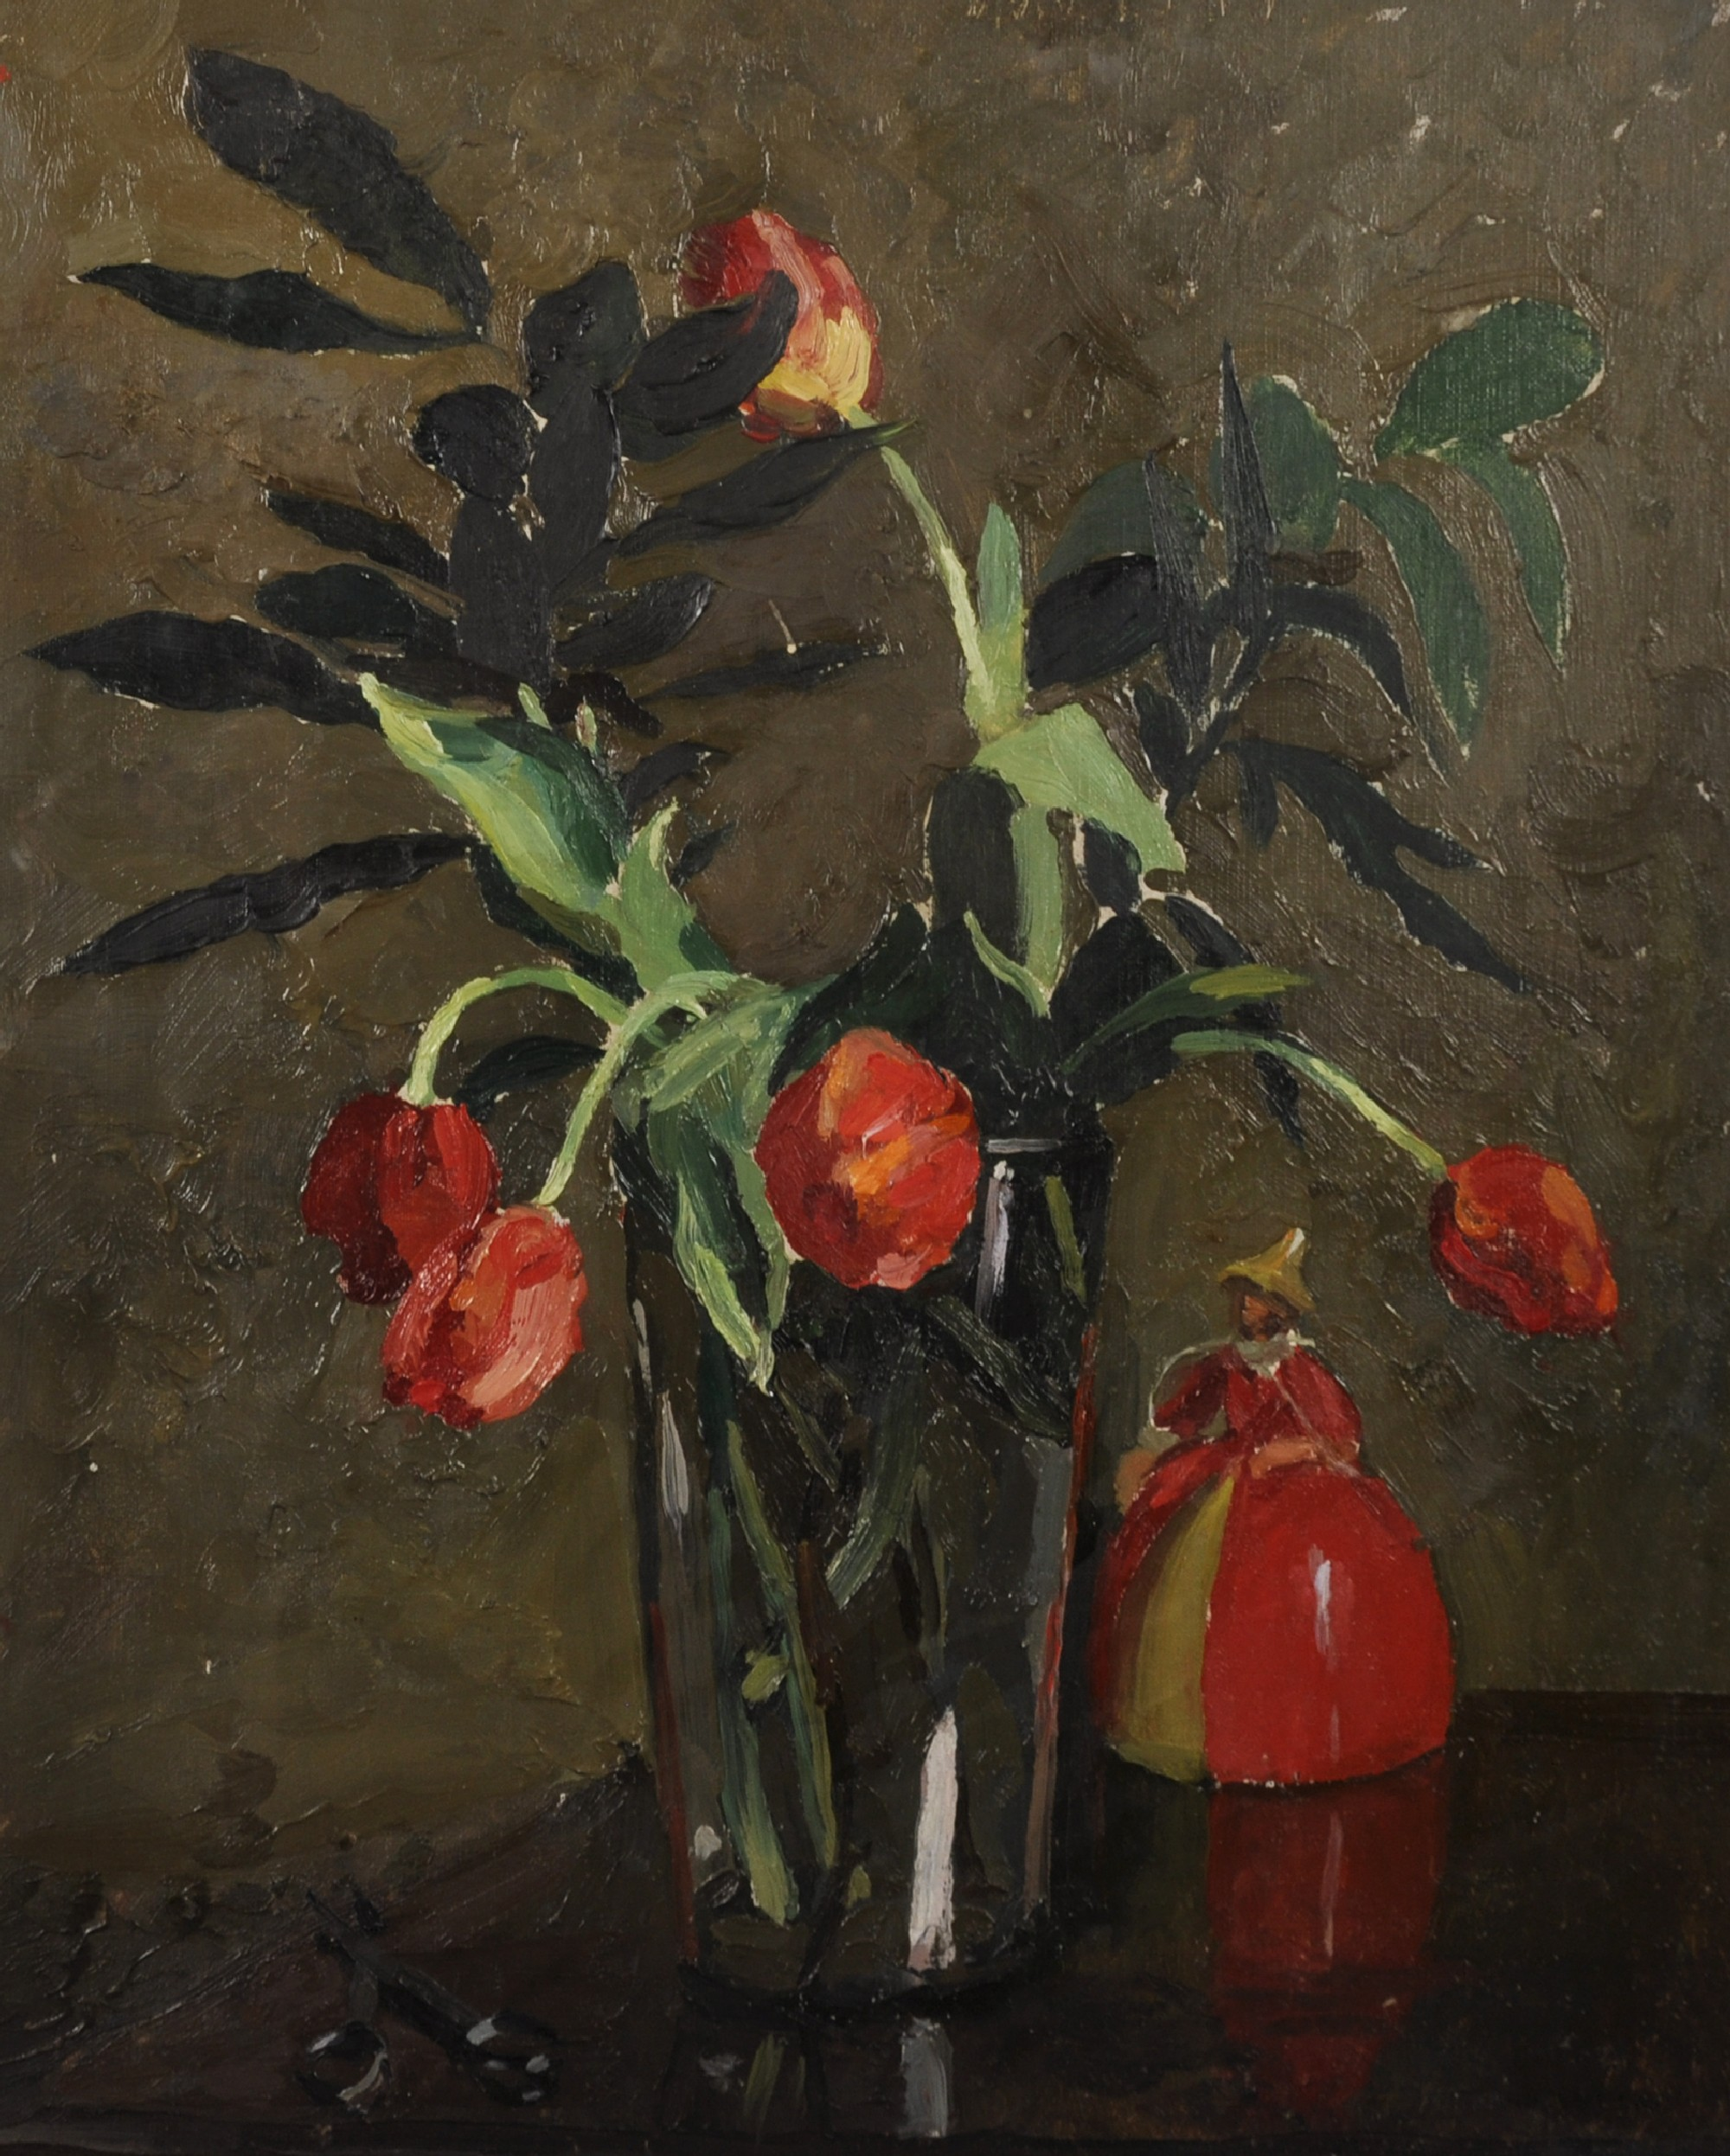 Lot 348 - Lady Elizabeth Chalmers (act. 1894-1939) British. Still Life of Tulips in a Glass Vase, with a China